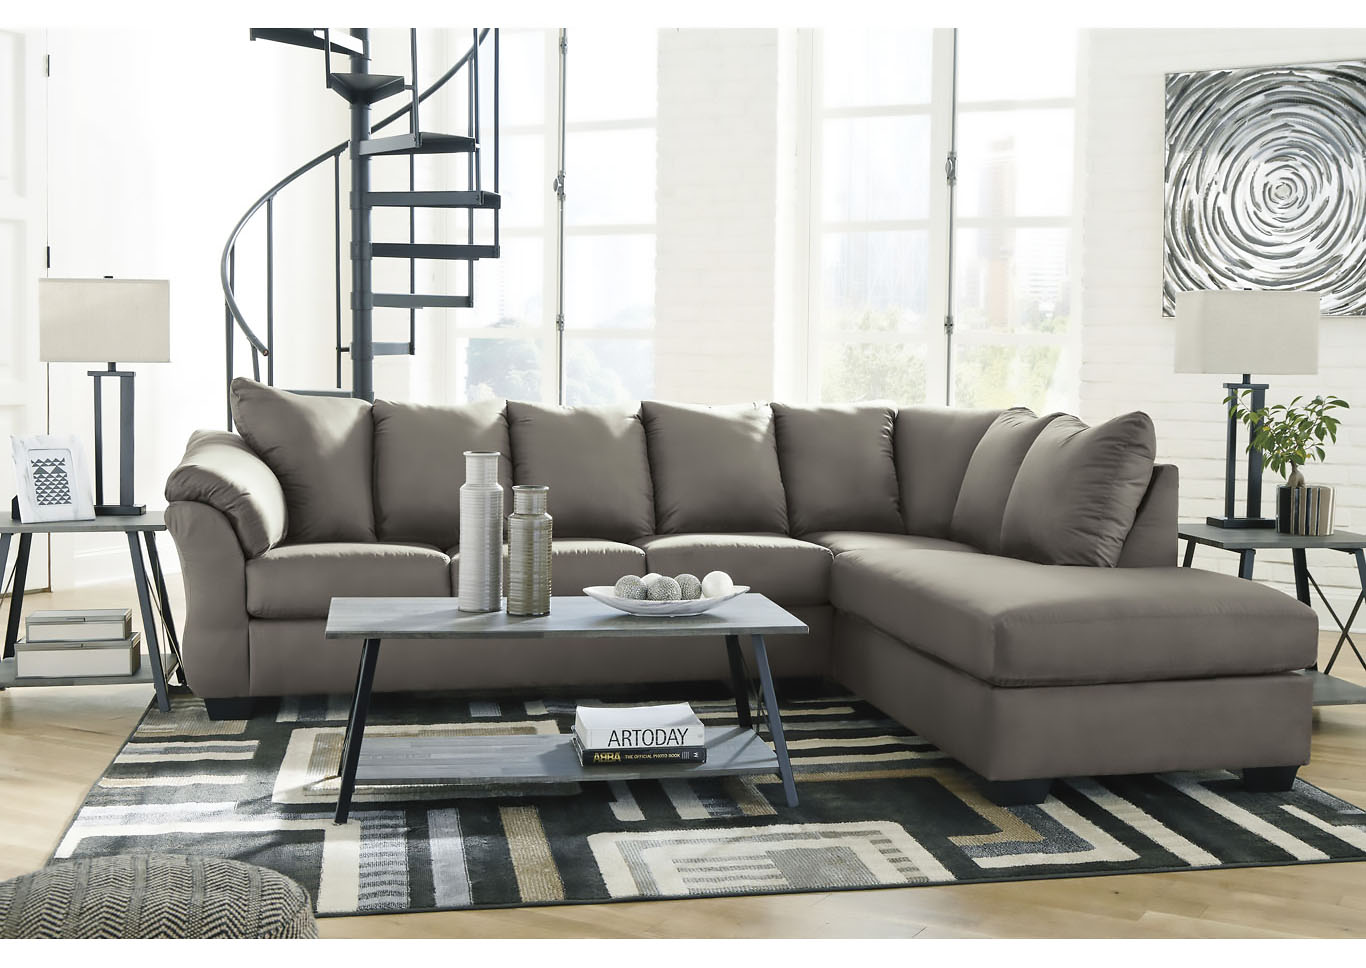 All Brands Furniture Edison Greenbrook North Brunswick